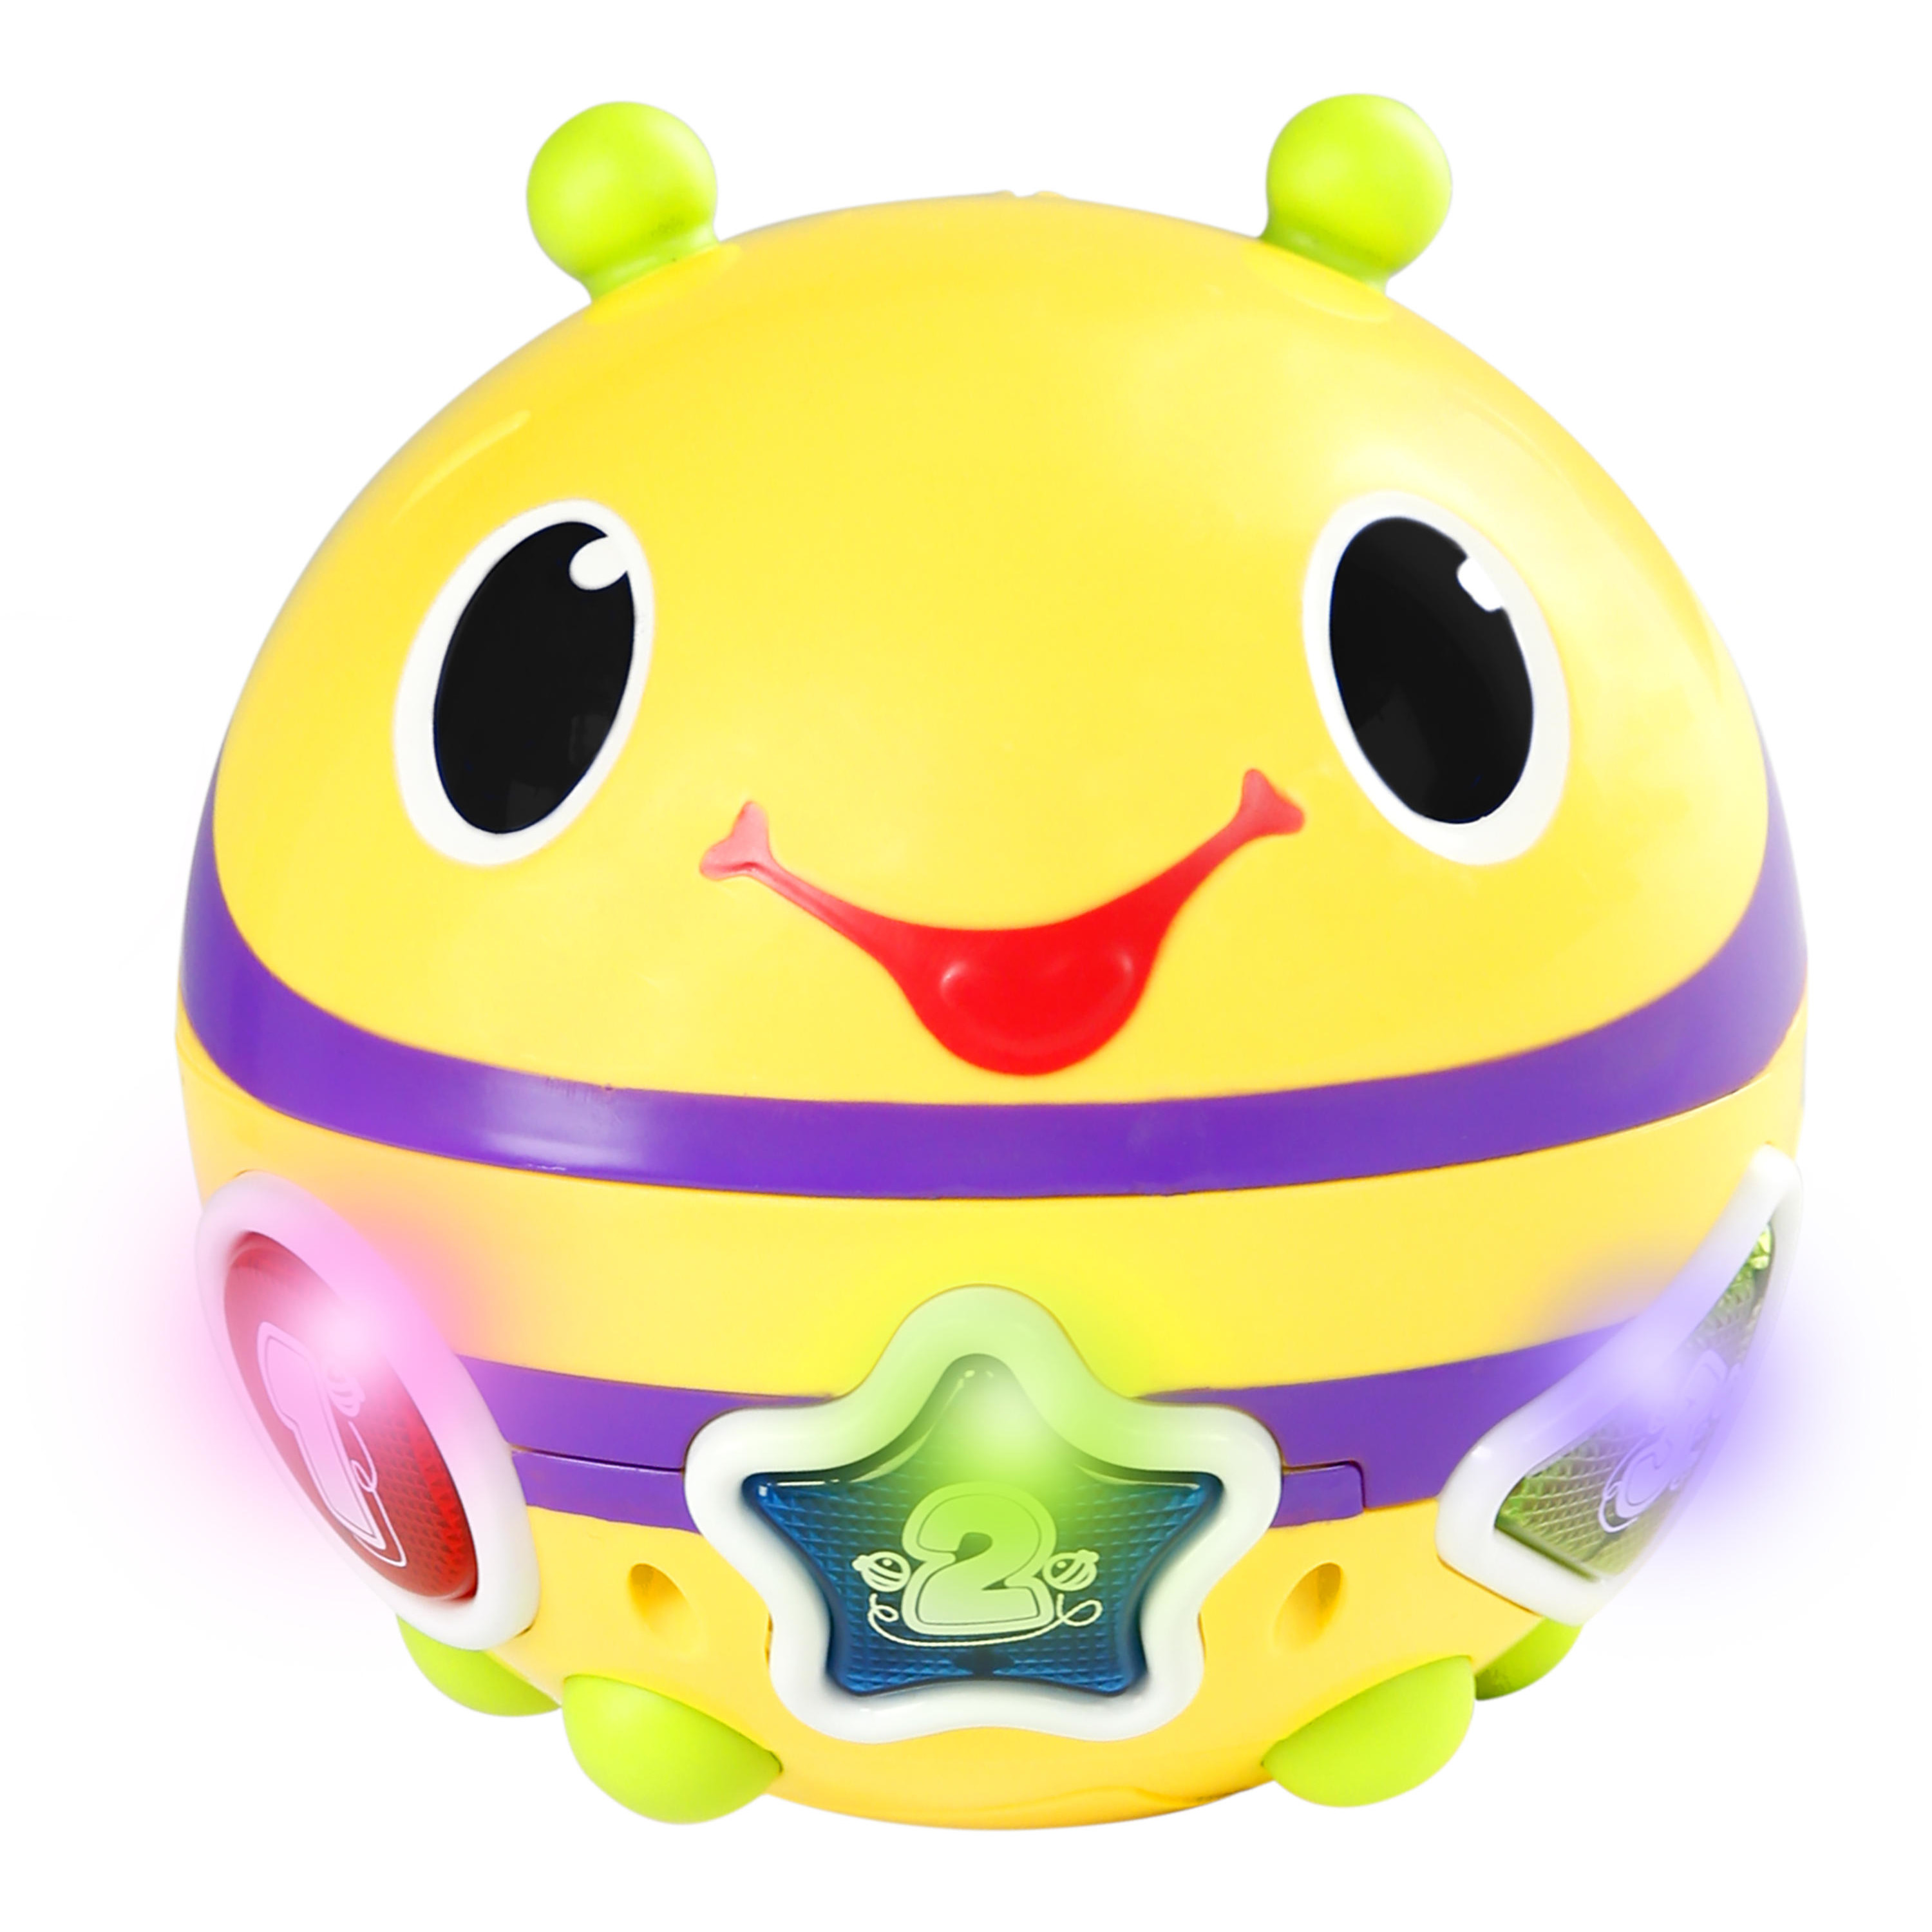 Bright Starts Roll & Chase Bumble Bee by Bright Starts